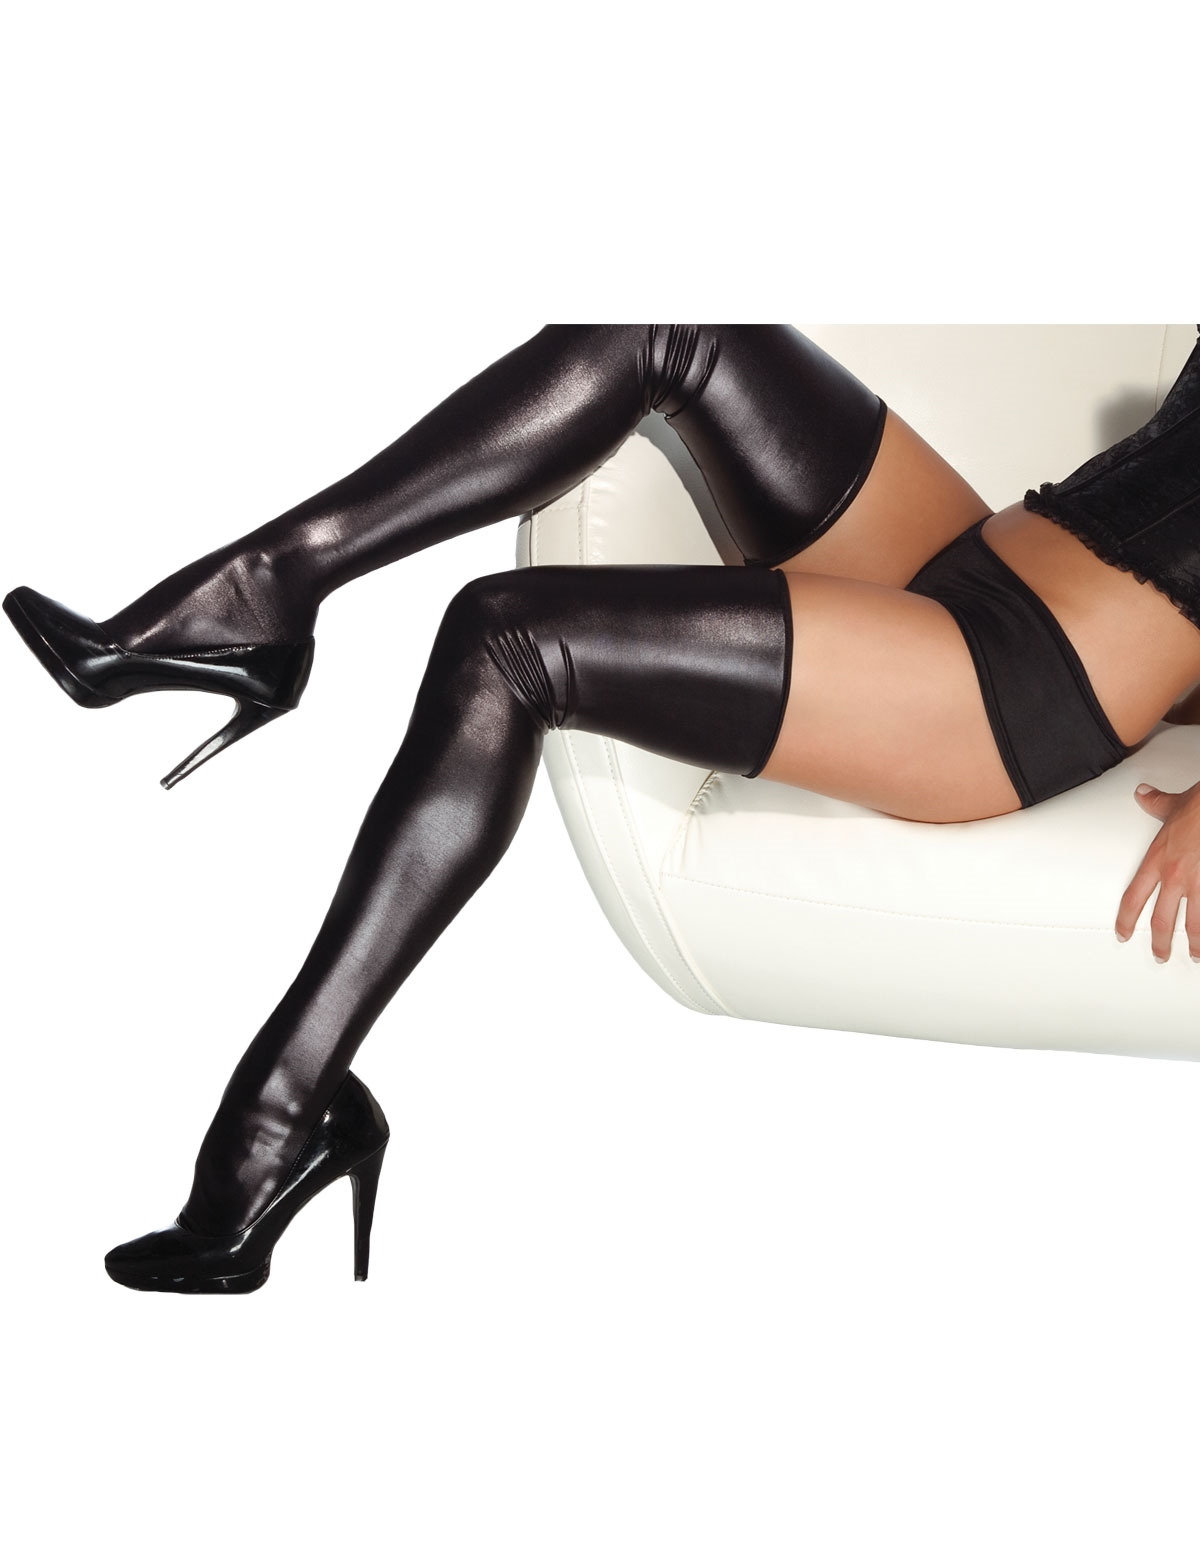 Wet Look Thigh High Stockings - Reg & Plus